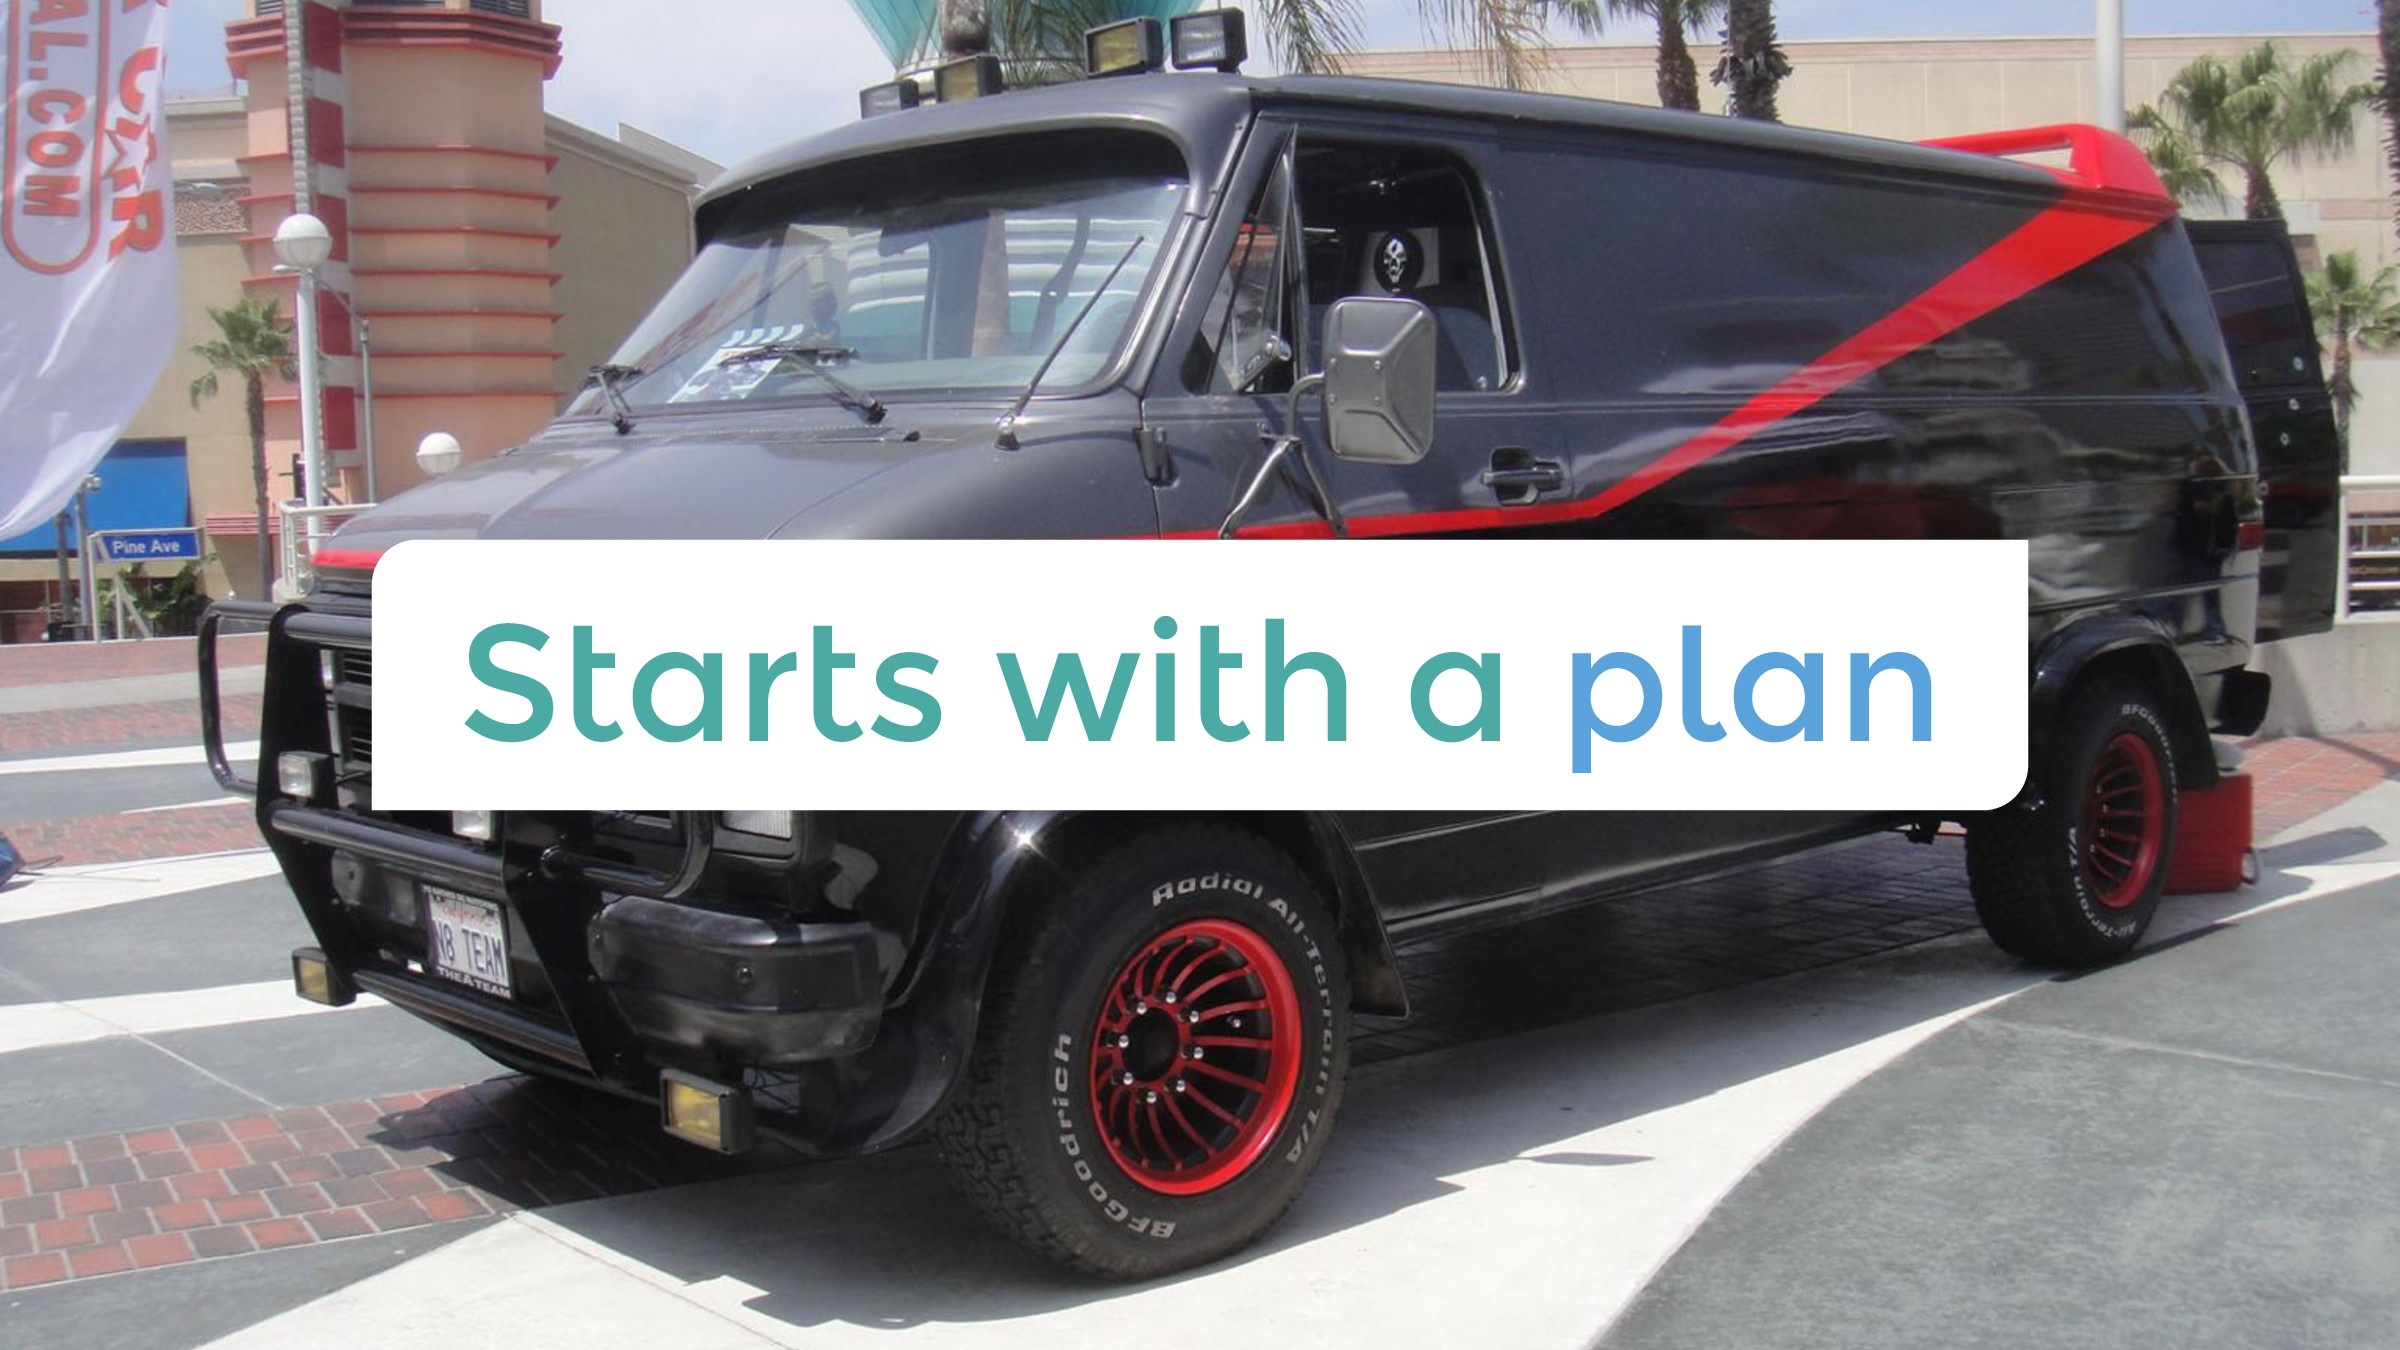 Starts with a plan